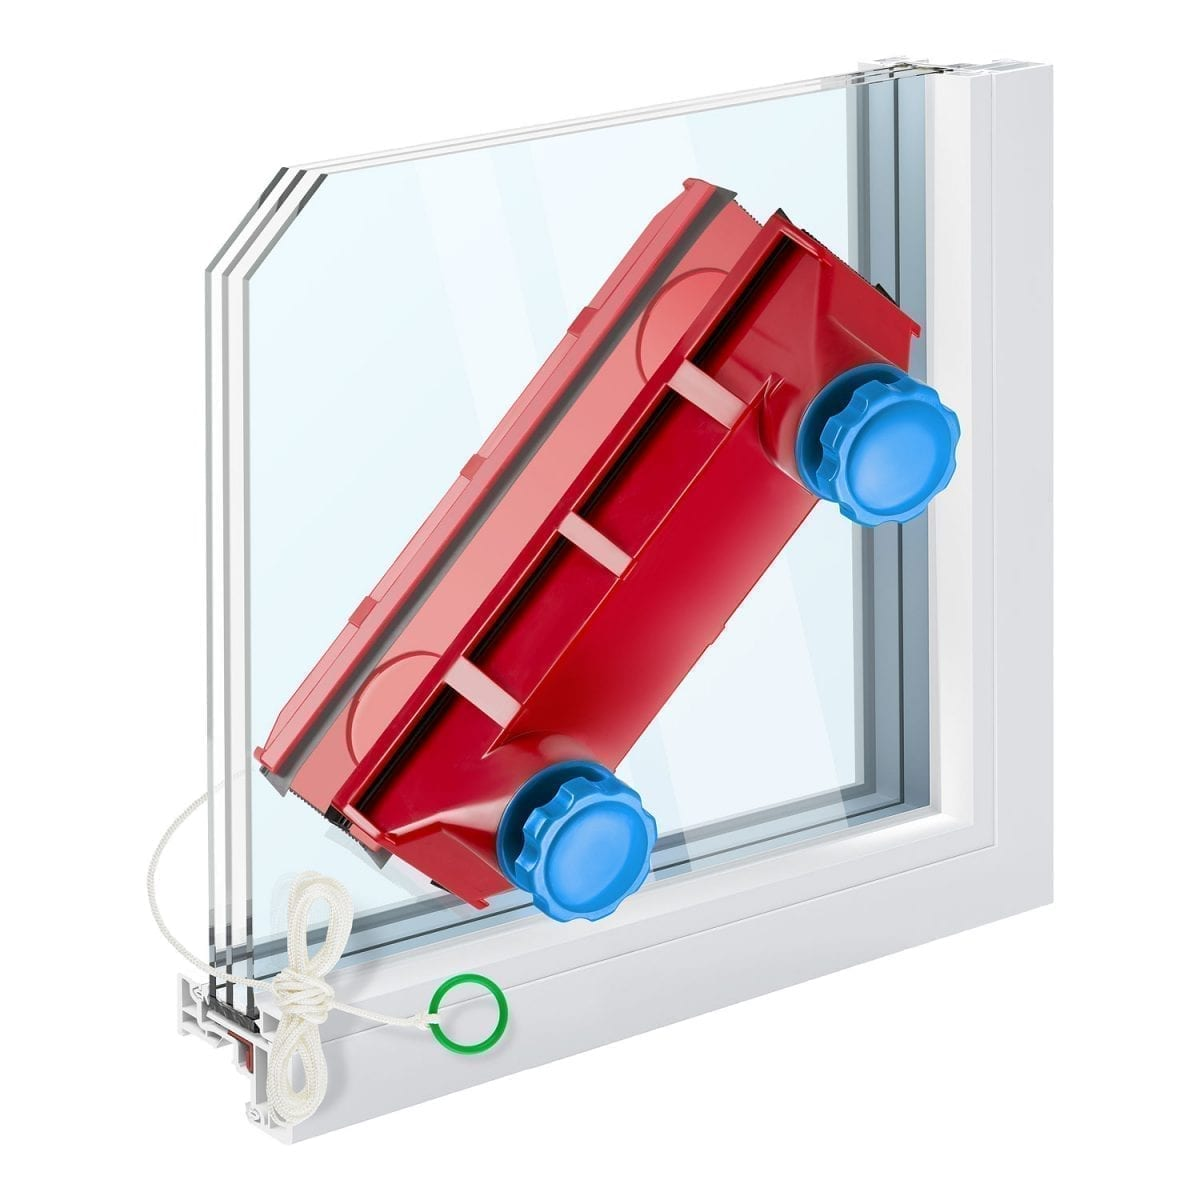 The Glider D-3 AFC Magnetic Window Cleaner Indoor and Outdoor Glass Pane Cleaning | Single or Double Glazed Window 2-28mm/0.08″-1.1″ | Adjustable Magnetic Force